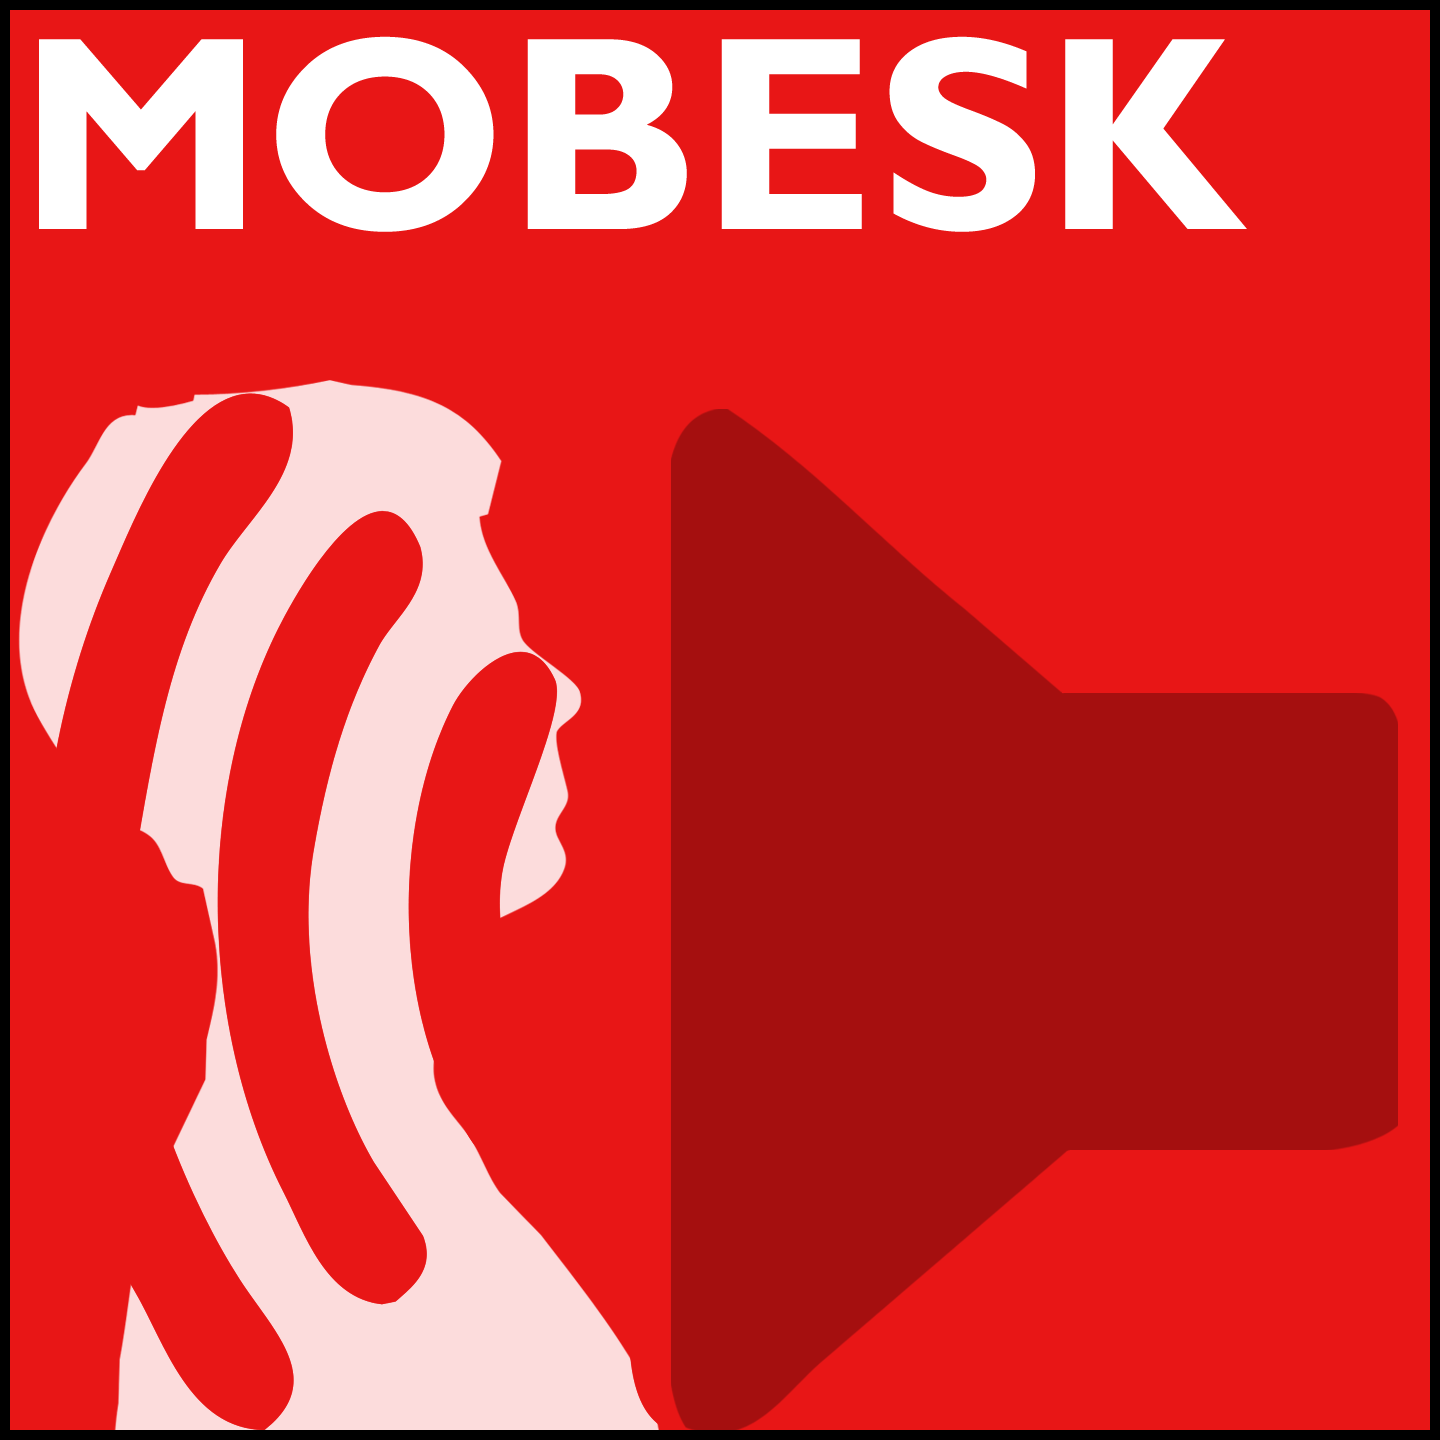 Mobesk